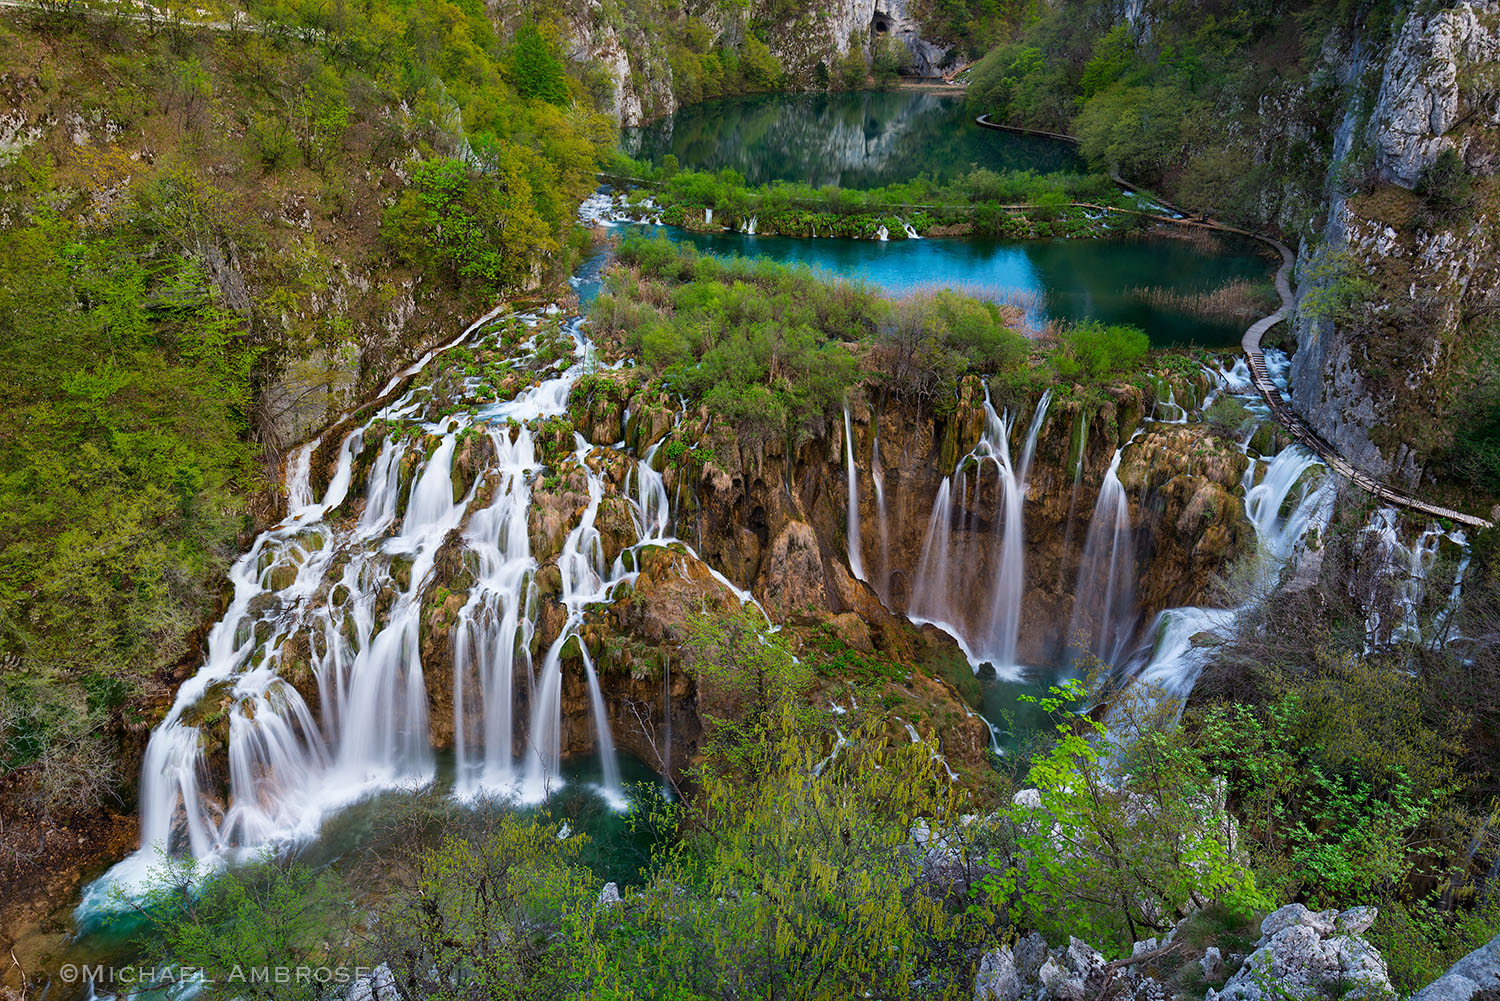 Lakes, waterfalls and cascades join and follow wooden paths hovering just above deep blue water in Plitvice National Park in Croatia.